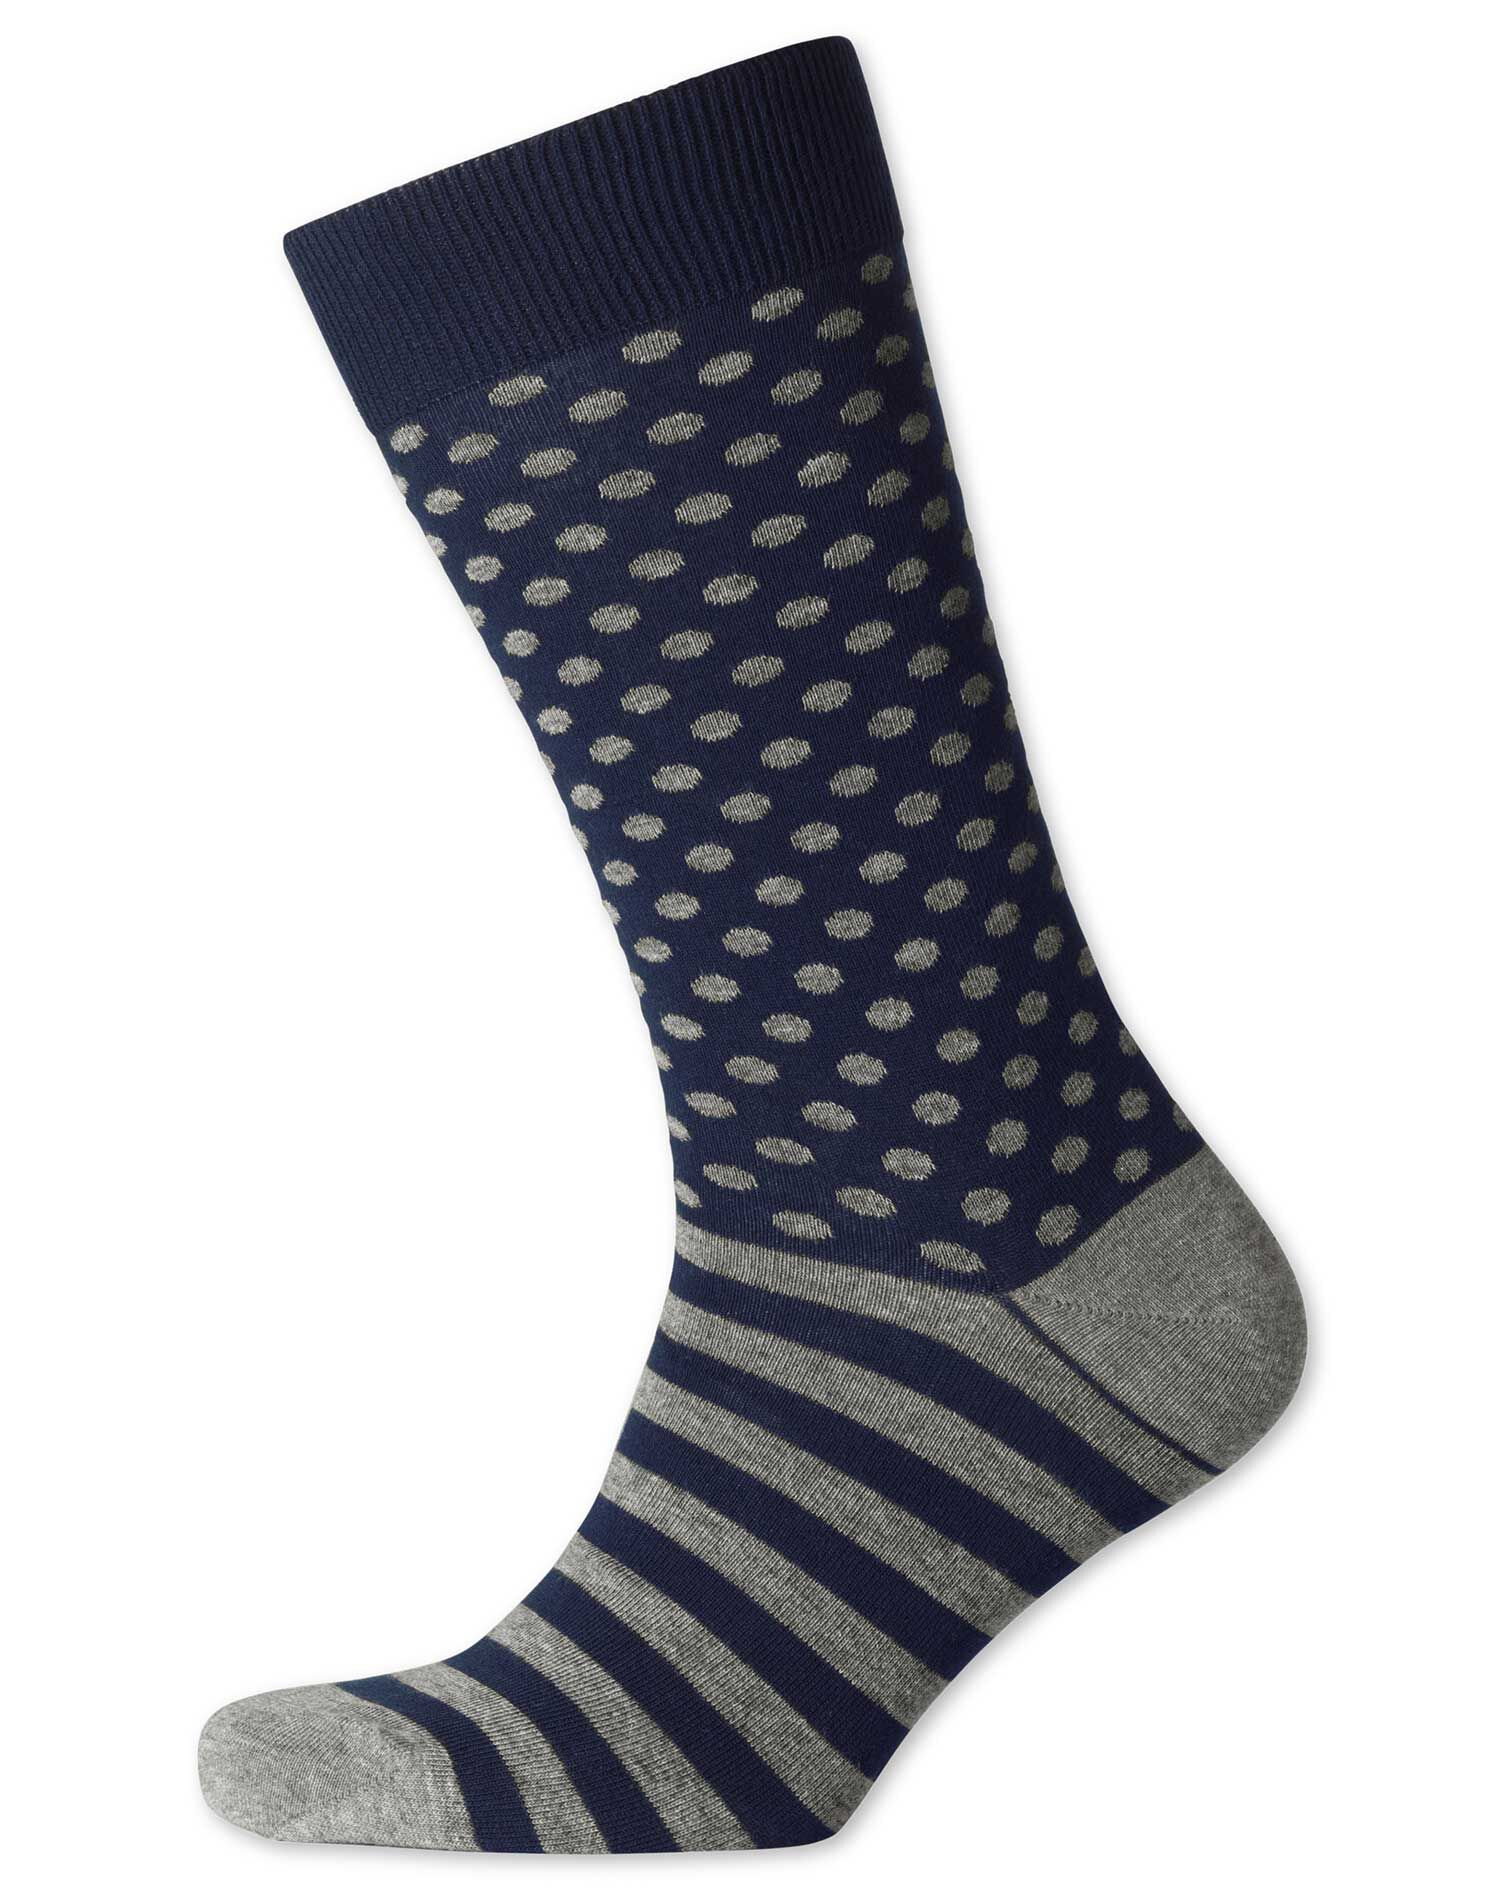 Navy and Grey Spot and Stripe Socks Size Medium by Charles Tyrwhitt